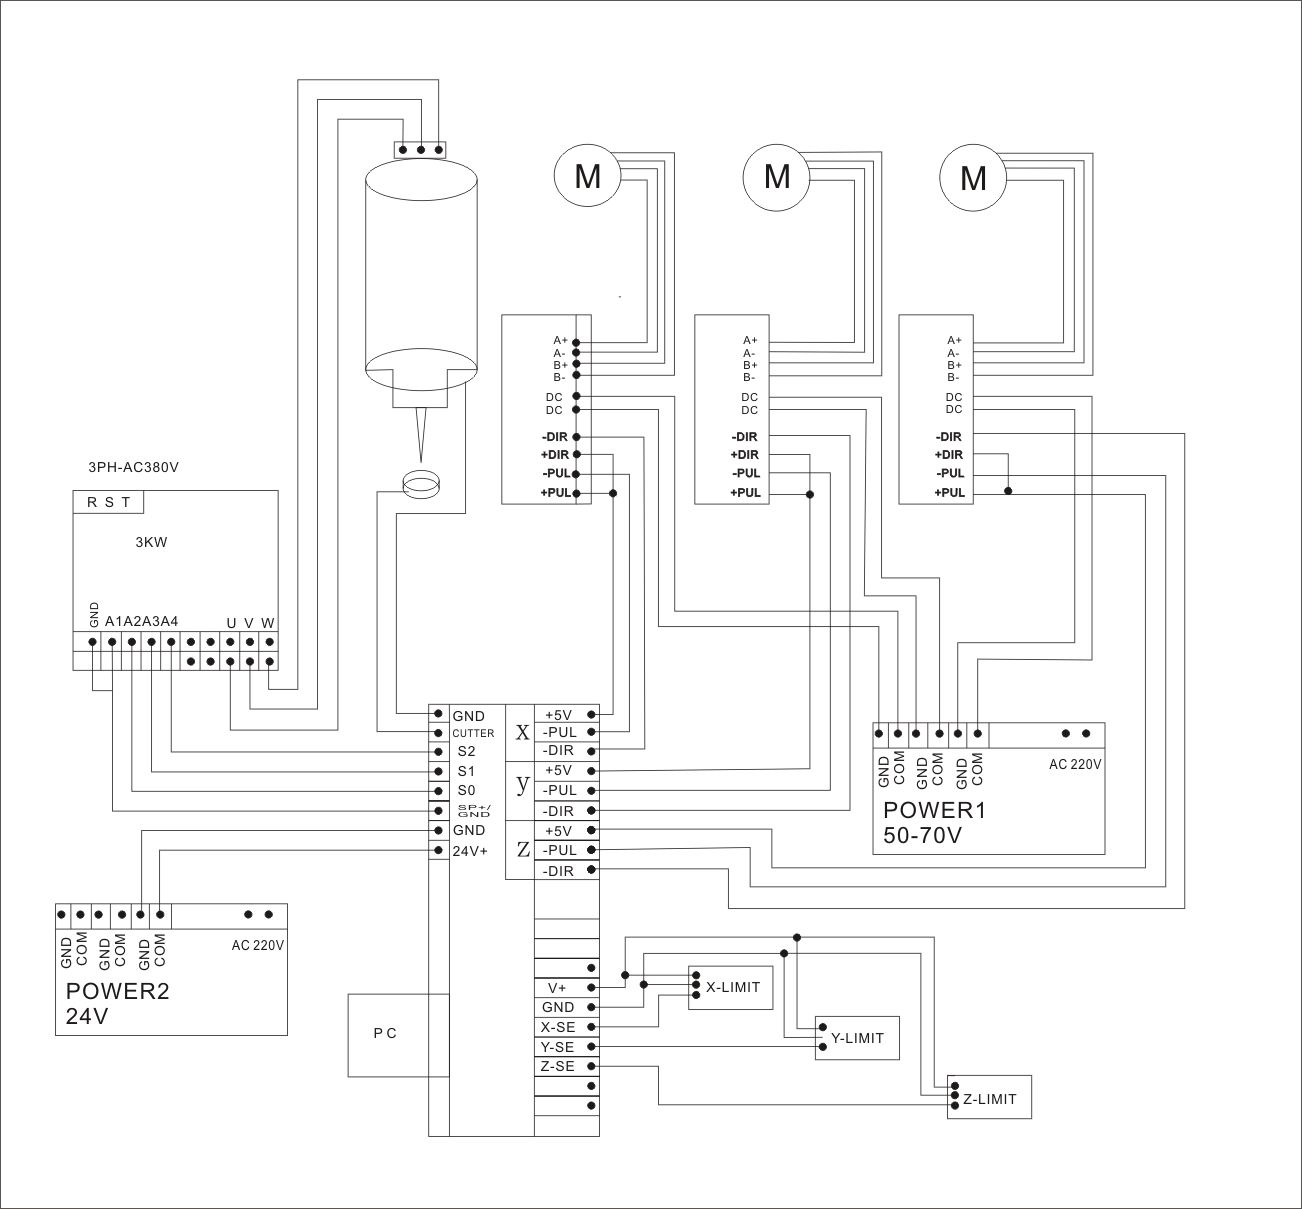 wiring diagram for woodworking cnc router   tengzhou jianda cnc    wiring diagram for woodworking cnc router